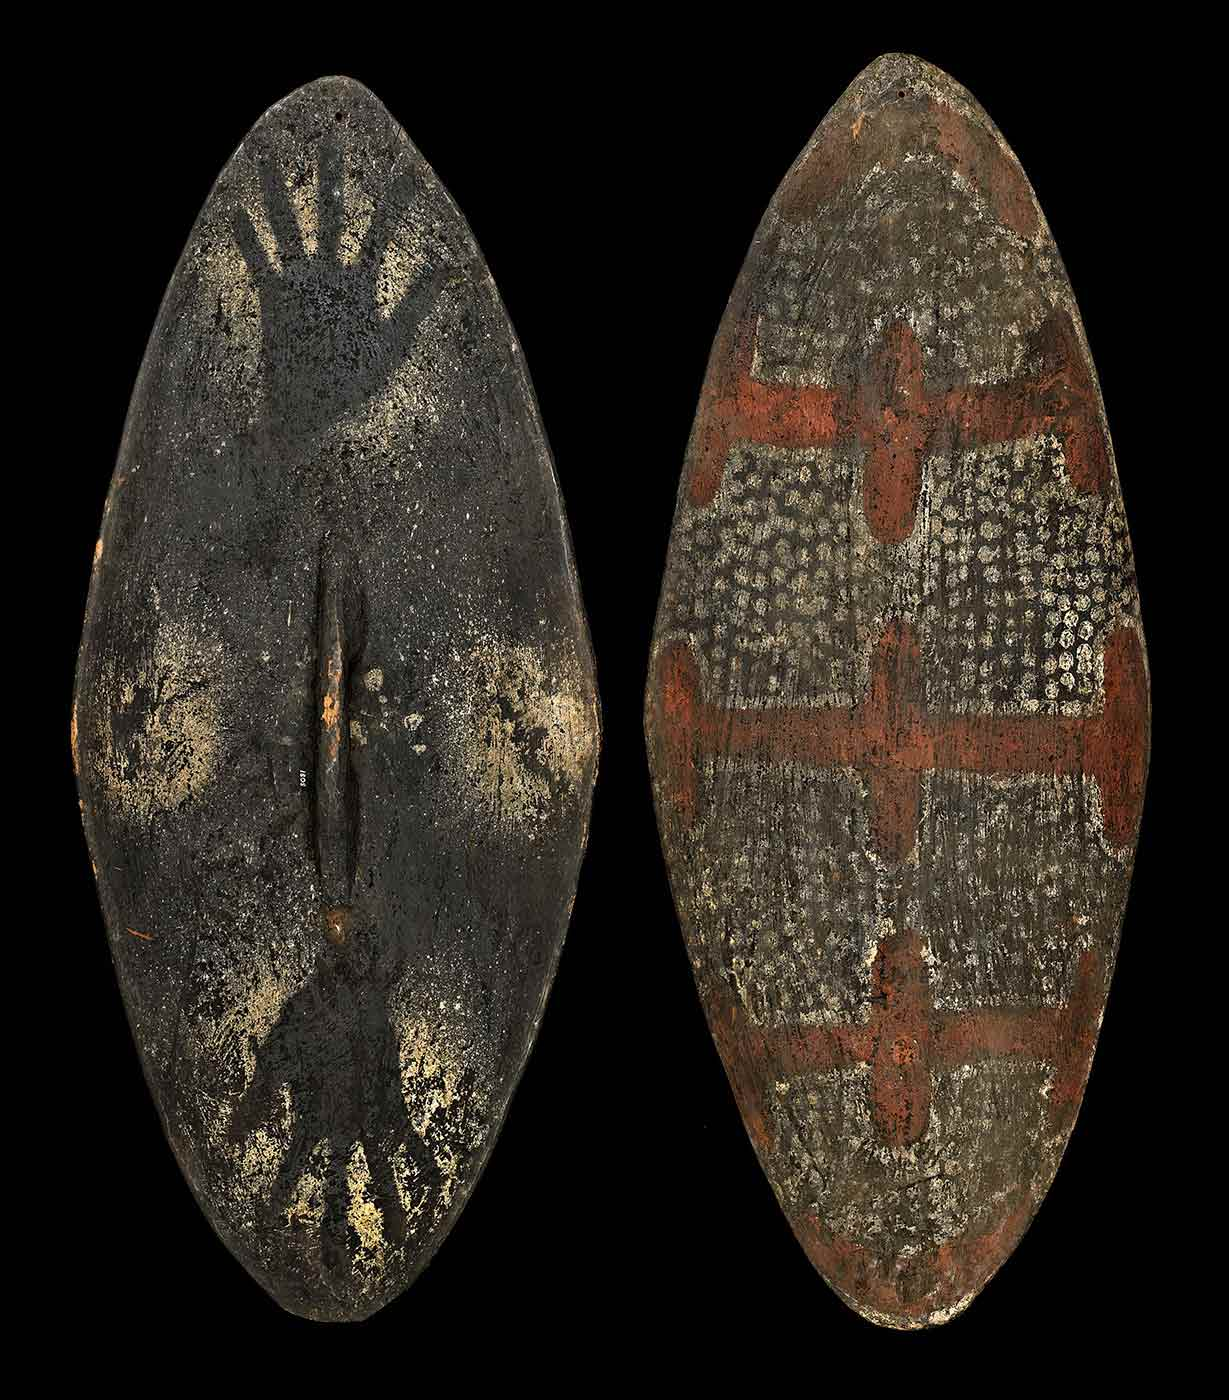 Large oval shaped wooden shield, painted with broad red bars with white spots on a black background. The reverse side features a handle and sprinklings of white paint as well as two hand stencils.